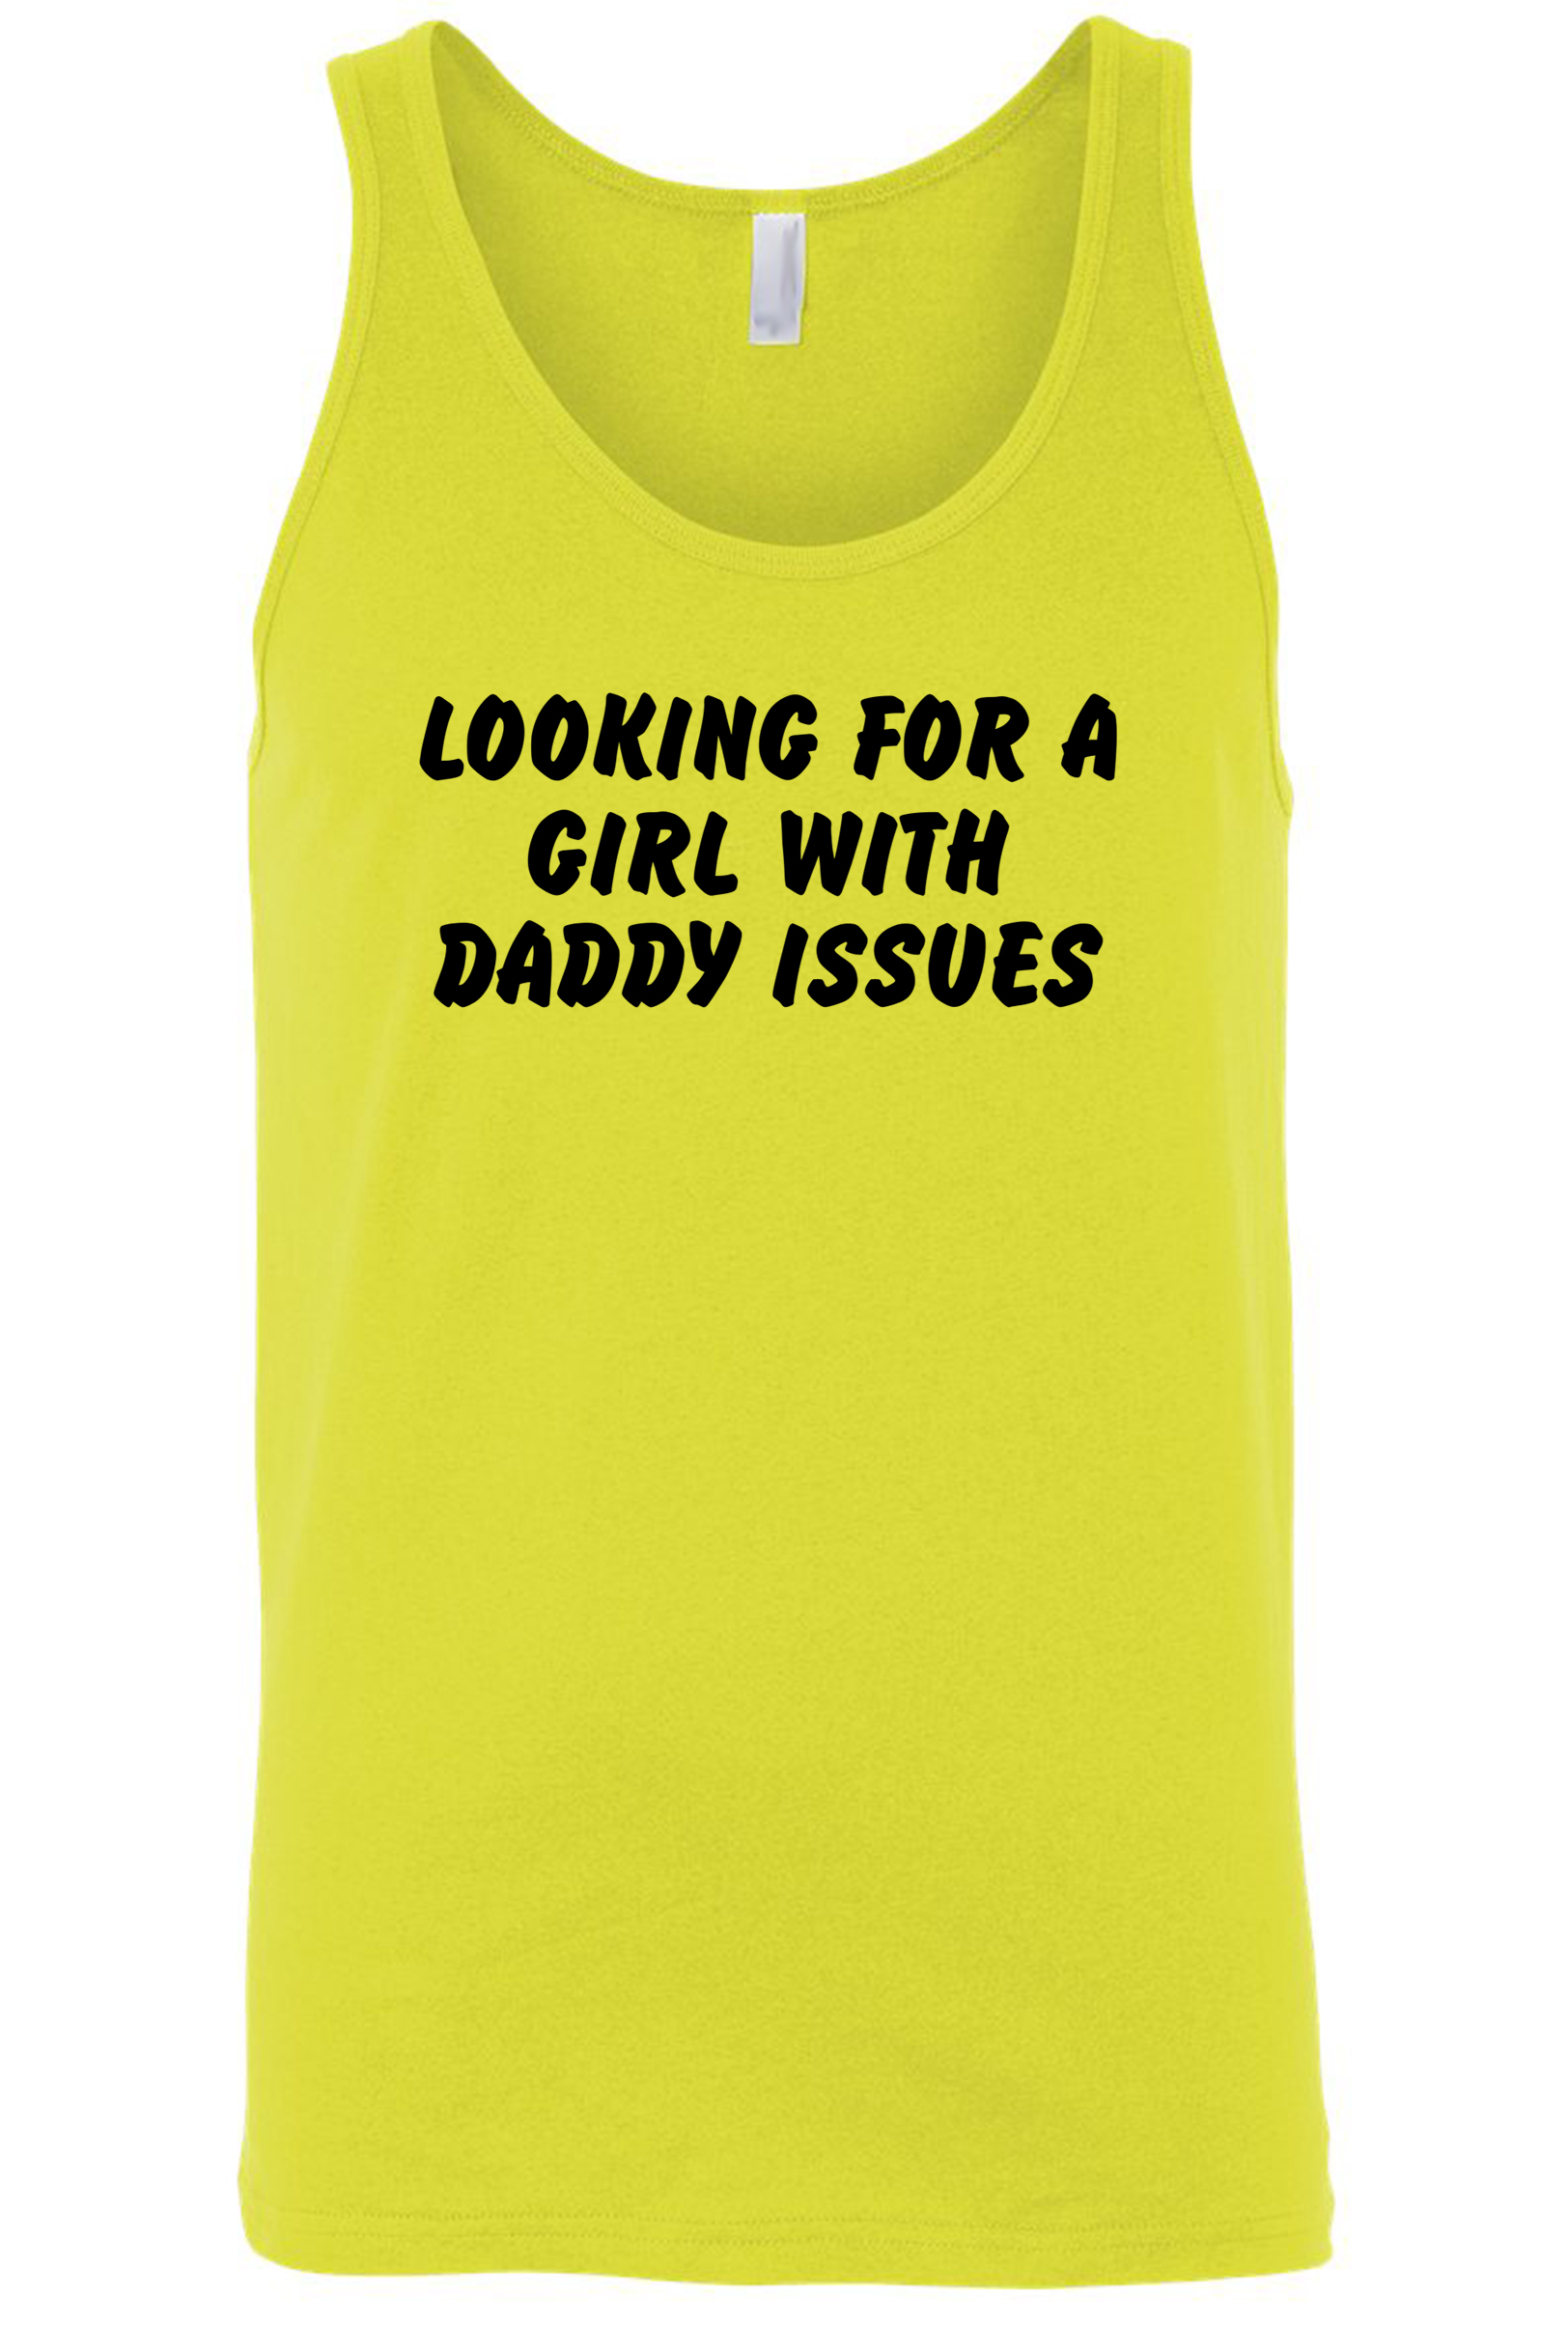 Men's Looking for a Girl w/ Daddy Issues Tank Top Shirt